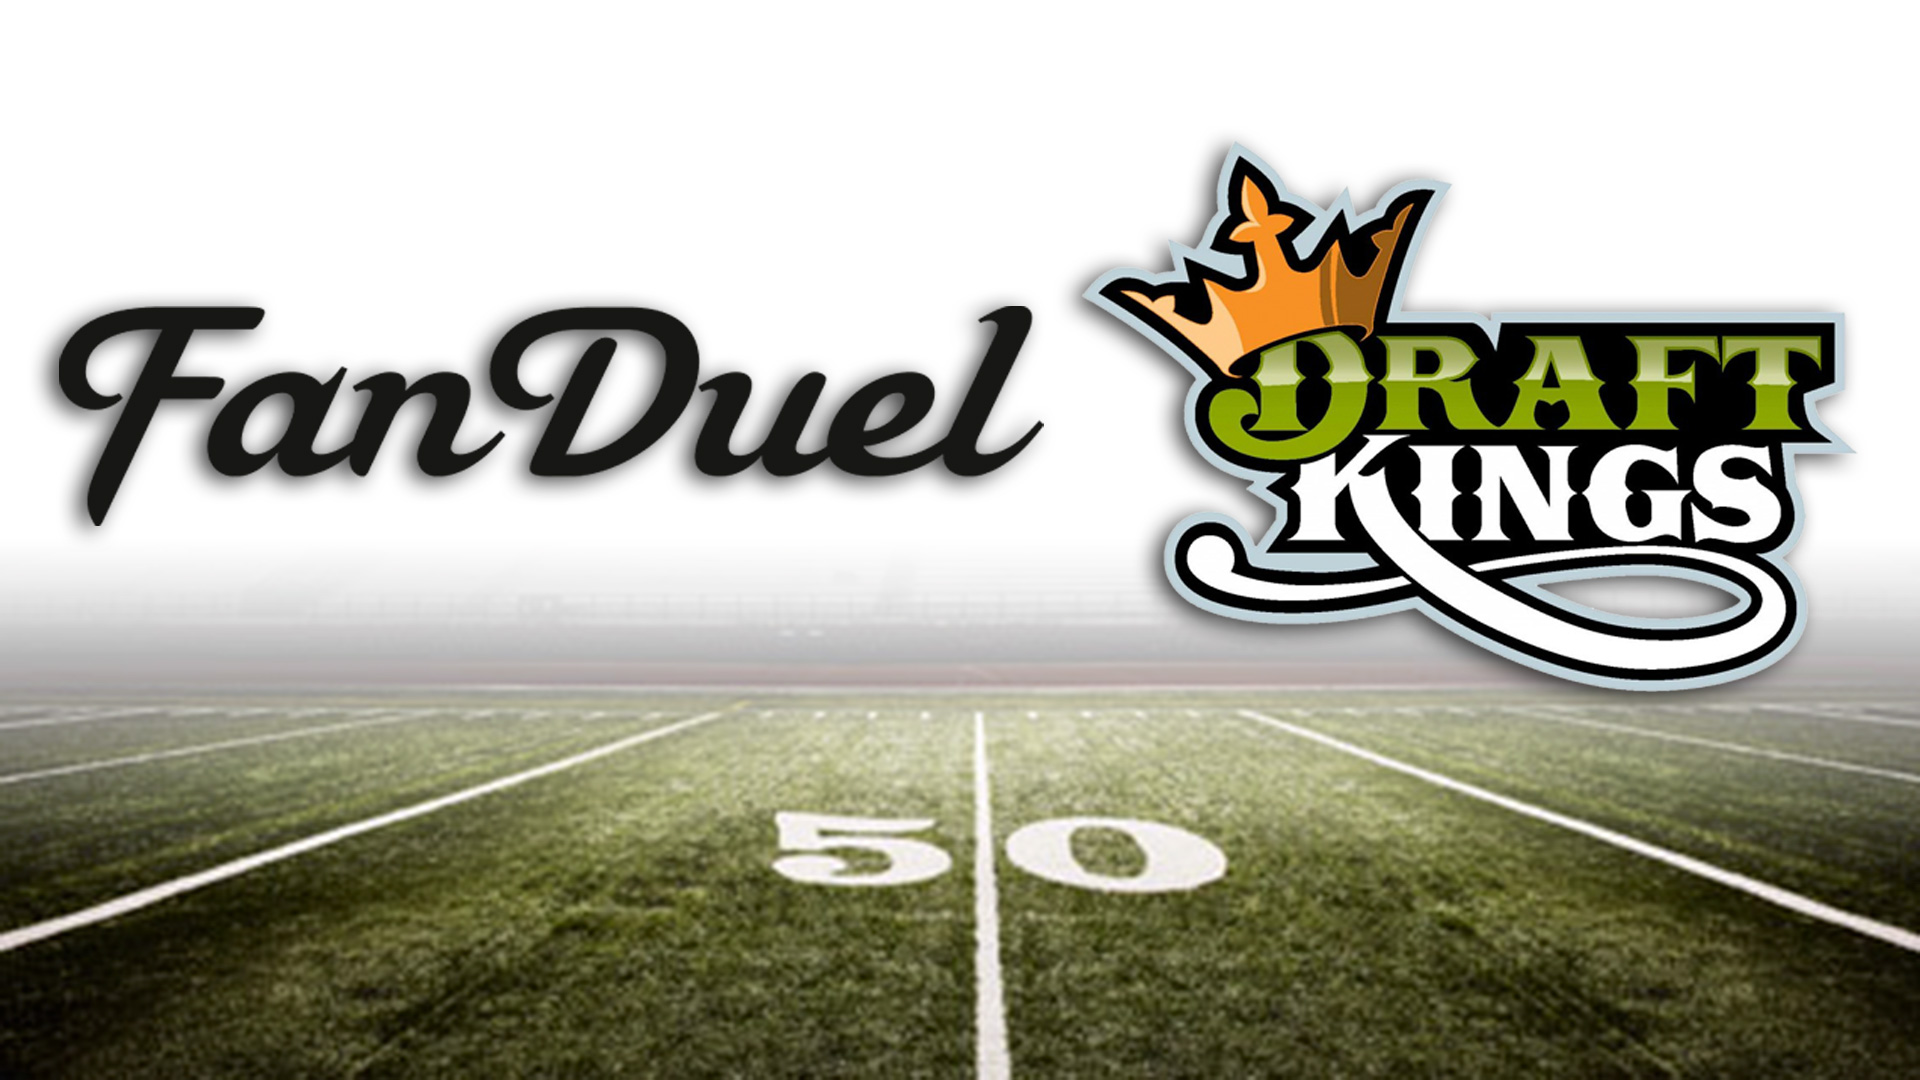 FanDuel and DraftKings announce merger 2